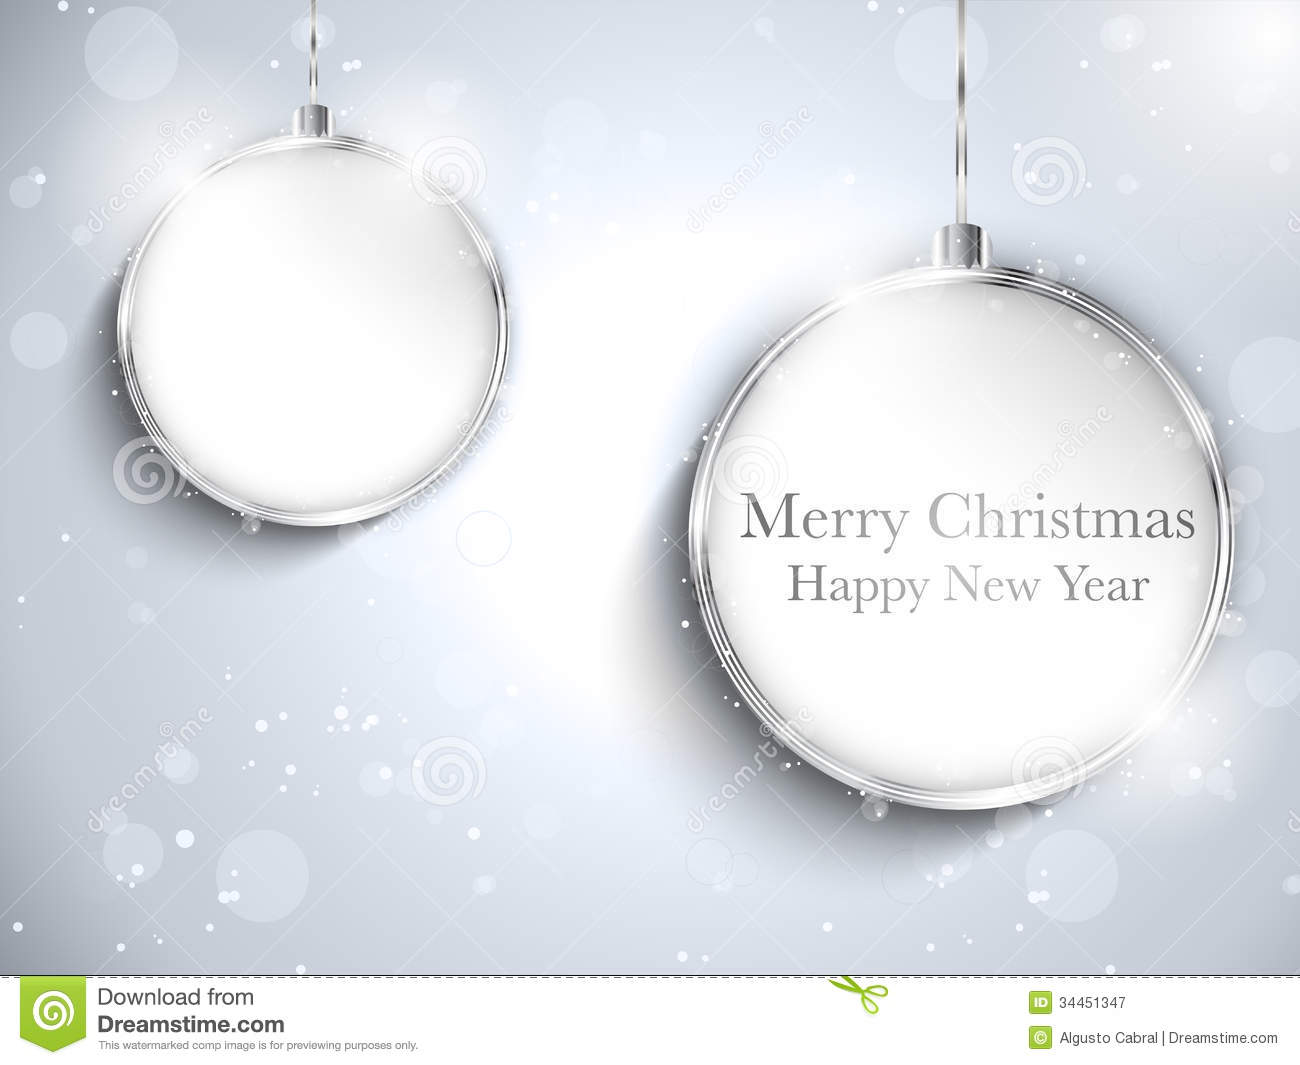 Merry Christmas Happy New Year Ball Silver with St